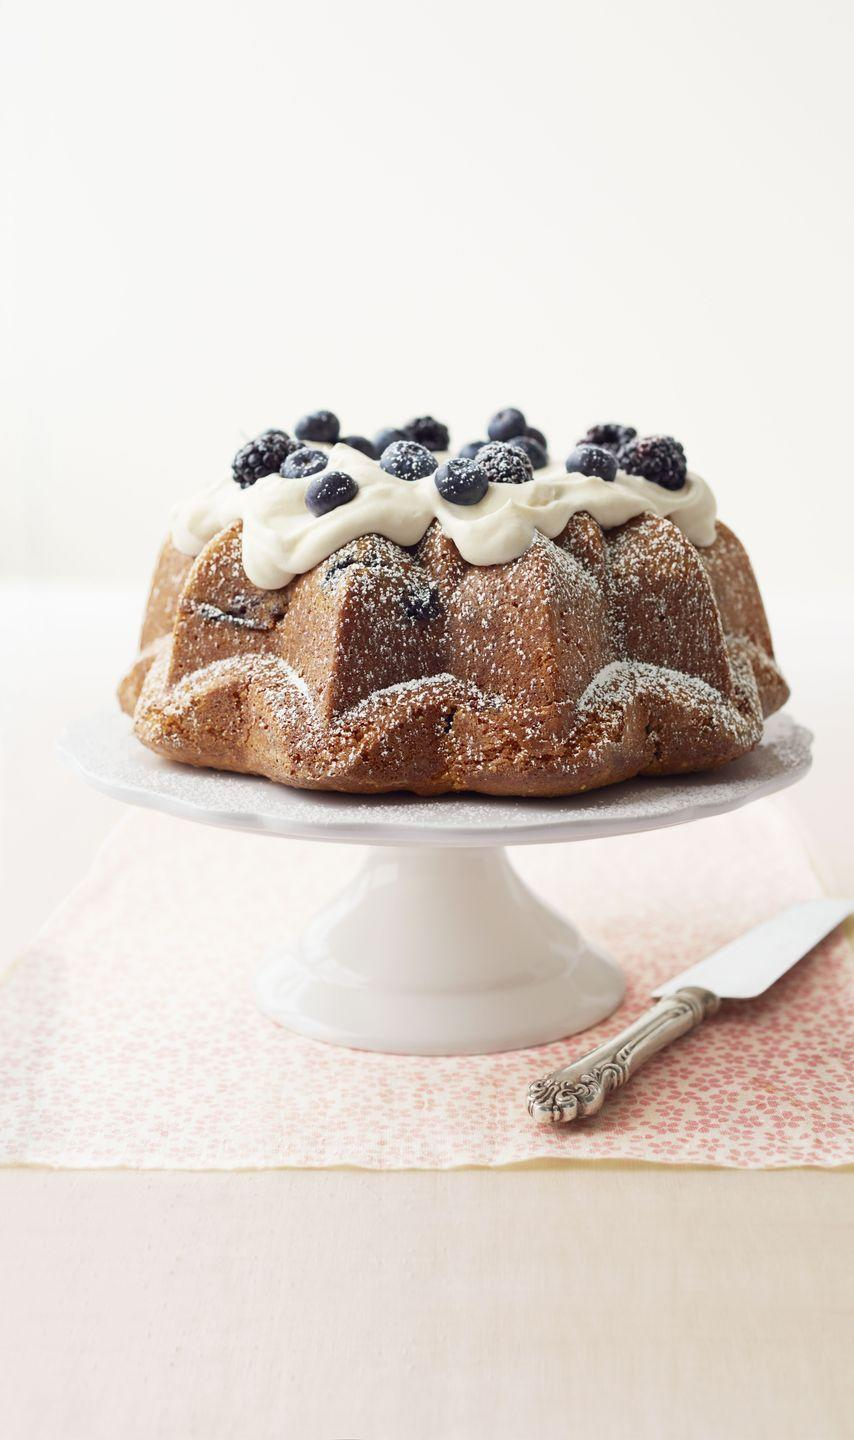 """<p>Behold the fruitiest-ever Bundt, with two cups of berries baked in and sprinkled on top of tangy lemon curd whipped cream.</p><p><em><a href=""""https://www.goodhousekeeping.com/food-recipes/a15192/bursting-berries-lemon-curd-cake-recipe-ghk0513/"""" rel=""""nofollow noopener"""" target=""""_blank"""" data-ylk=""""slk:Get the recipe for Bursting-with-Berries Lemon Curd Cake »"""" class=""""link rapid-noclick-resp"""">Get the recipe for Bursting-with-Berries Lemon Curd Cake »</a></em></p><p><strong>RELATED: </strong><a href=""""https://www.goodhousekeeping.com/food-recipes/dessert/g1/fresh-fruit-dessert-recipes/"""" rel=""""nofollow noopener"""" target=""""_blank"""" data-ylk=""""slk:53 Fresh Fruit Dessert Recipes That Are the Perfect End to Any Meal"""" class=""""link rapid-noclick-resp"""">53 Fresh Fruit Dessert Recipes That Are the Perfect End to Any Meal</a><br></p>"""